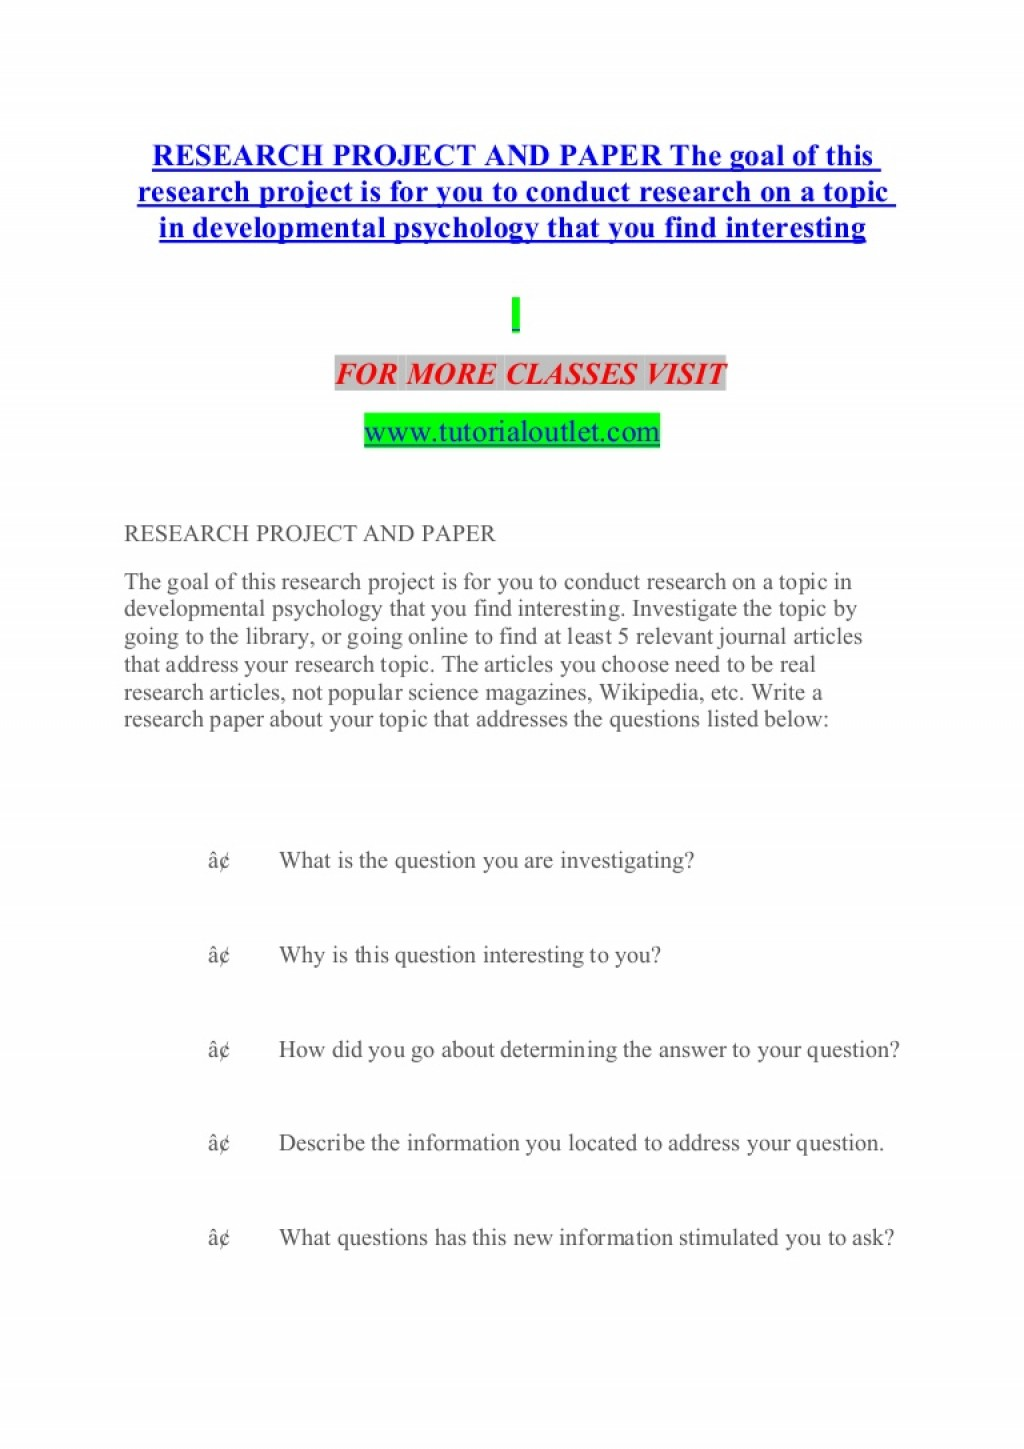 021 Research Paper Developmental Psychology Topics For Researchprojectandpaperthegoalofthisresearchprojectisforyoutoconductresearchonatopicindevelopmentalp Thumbnail Dreaded Potential Large